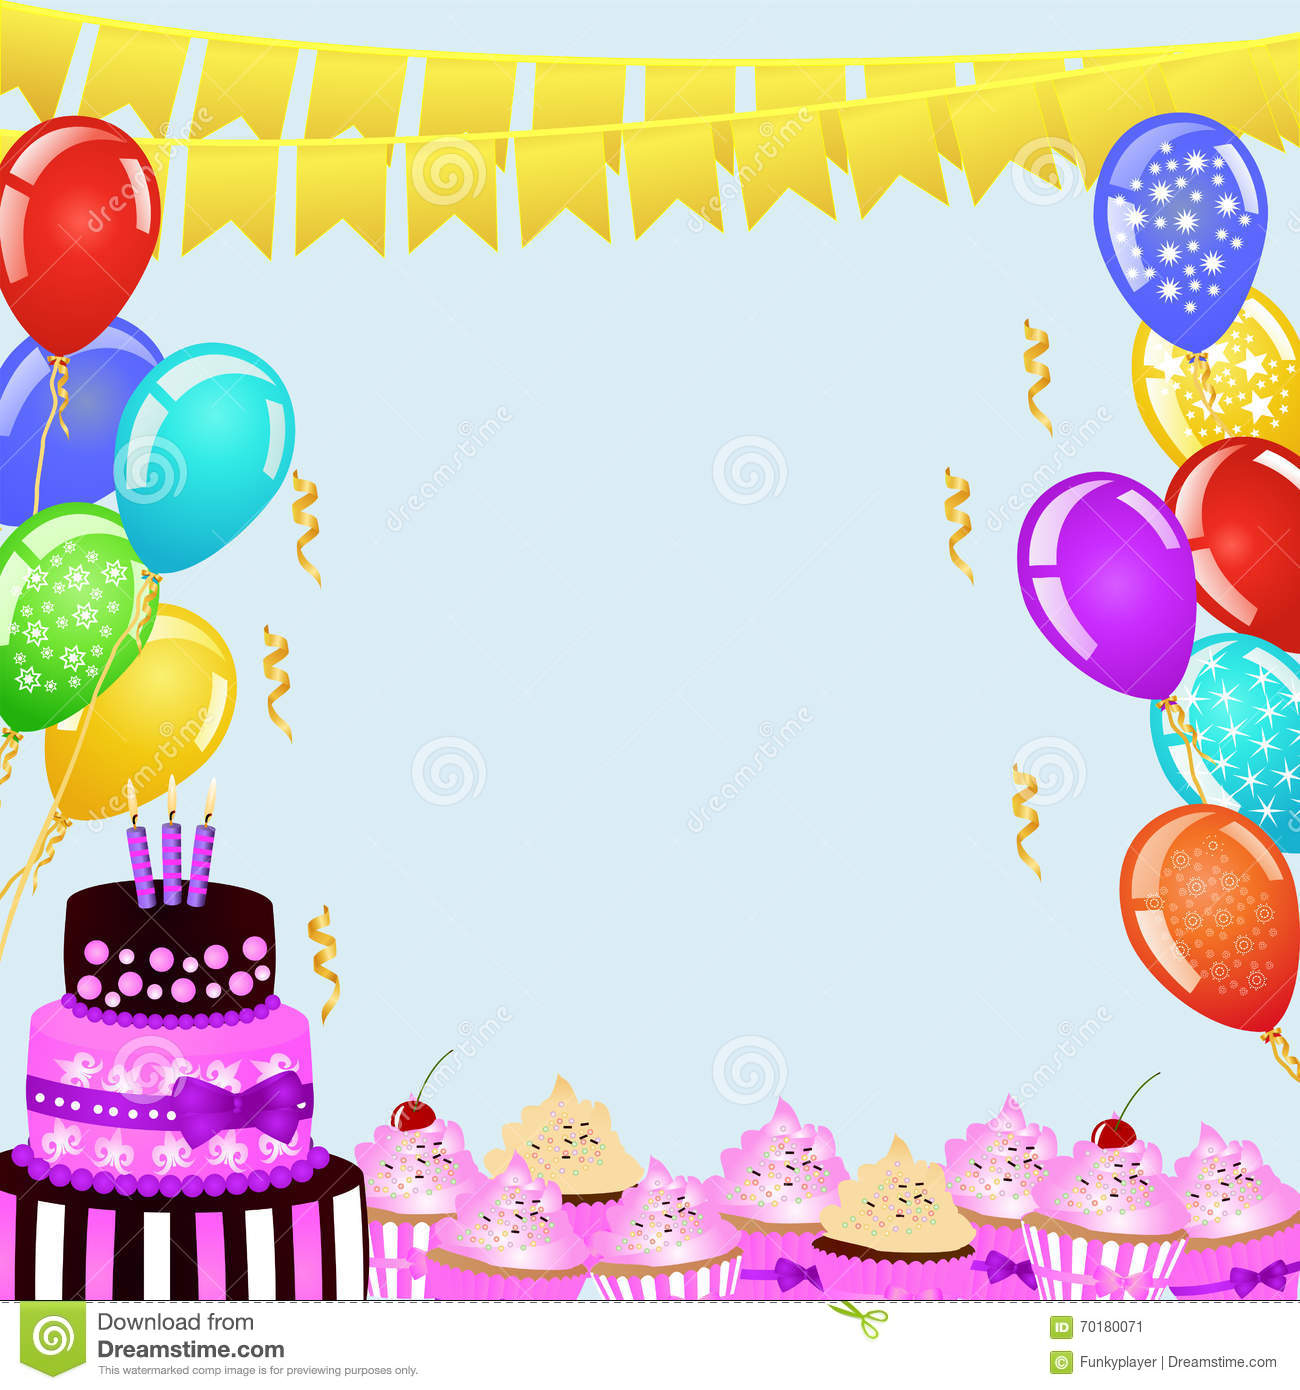 birthday party page borders ; birthday-party-background-bunting-flags-balloons-birthday-cake-cupcakes-border-your-design-festive-frame-70180071